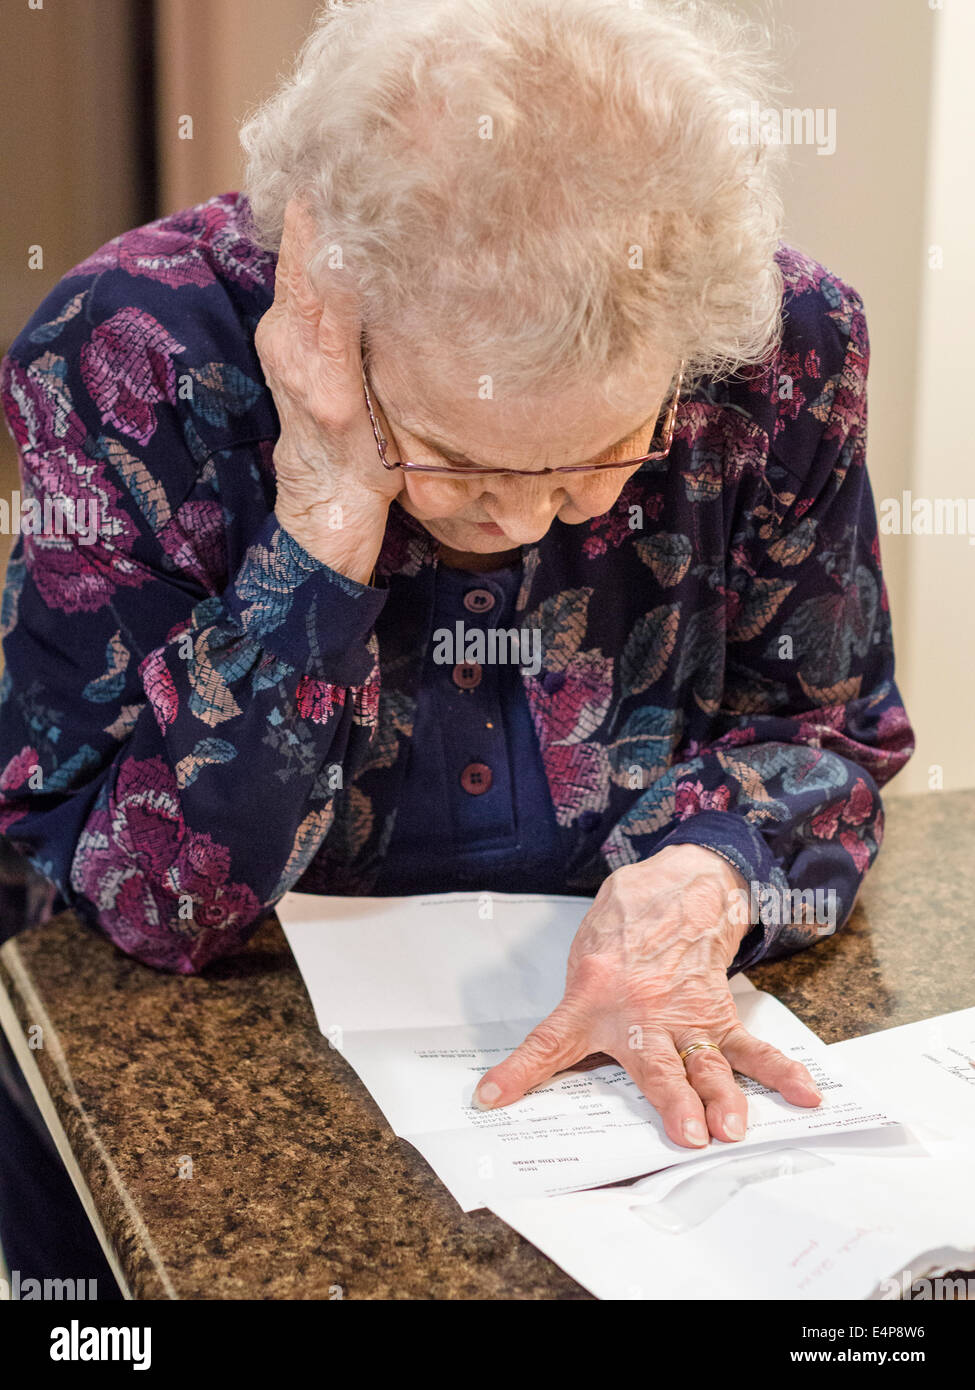 Trying to Understand a Letter. A senior woman reads a letter with her head held up by one hand while her other marks - Stock Image